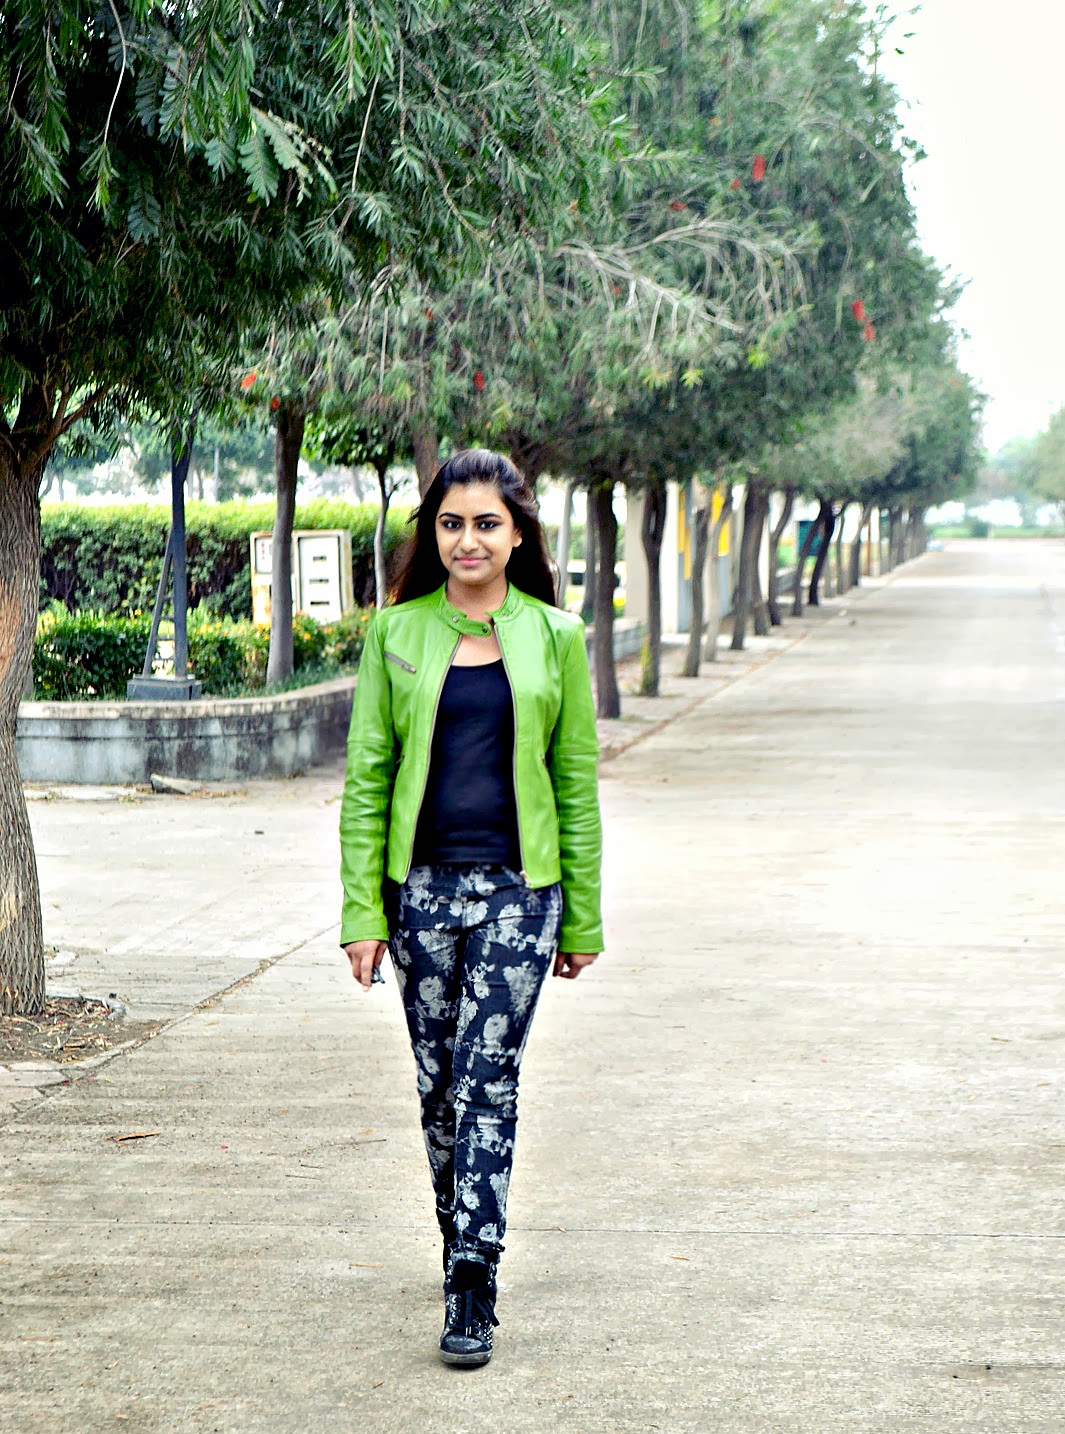 the style sorbet, kajol paul, zara, mango, leather jacket, prints, street style, fashion, style, blog